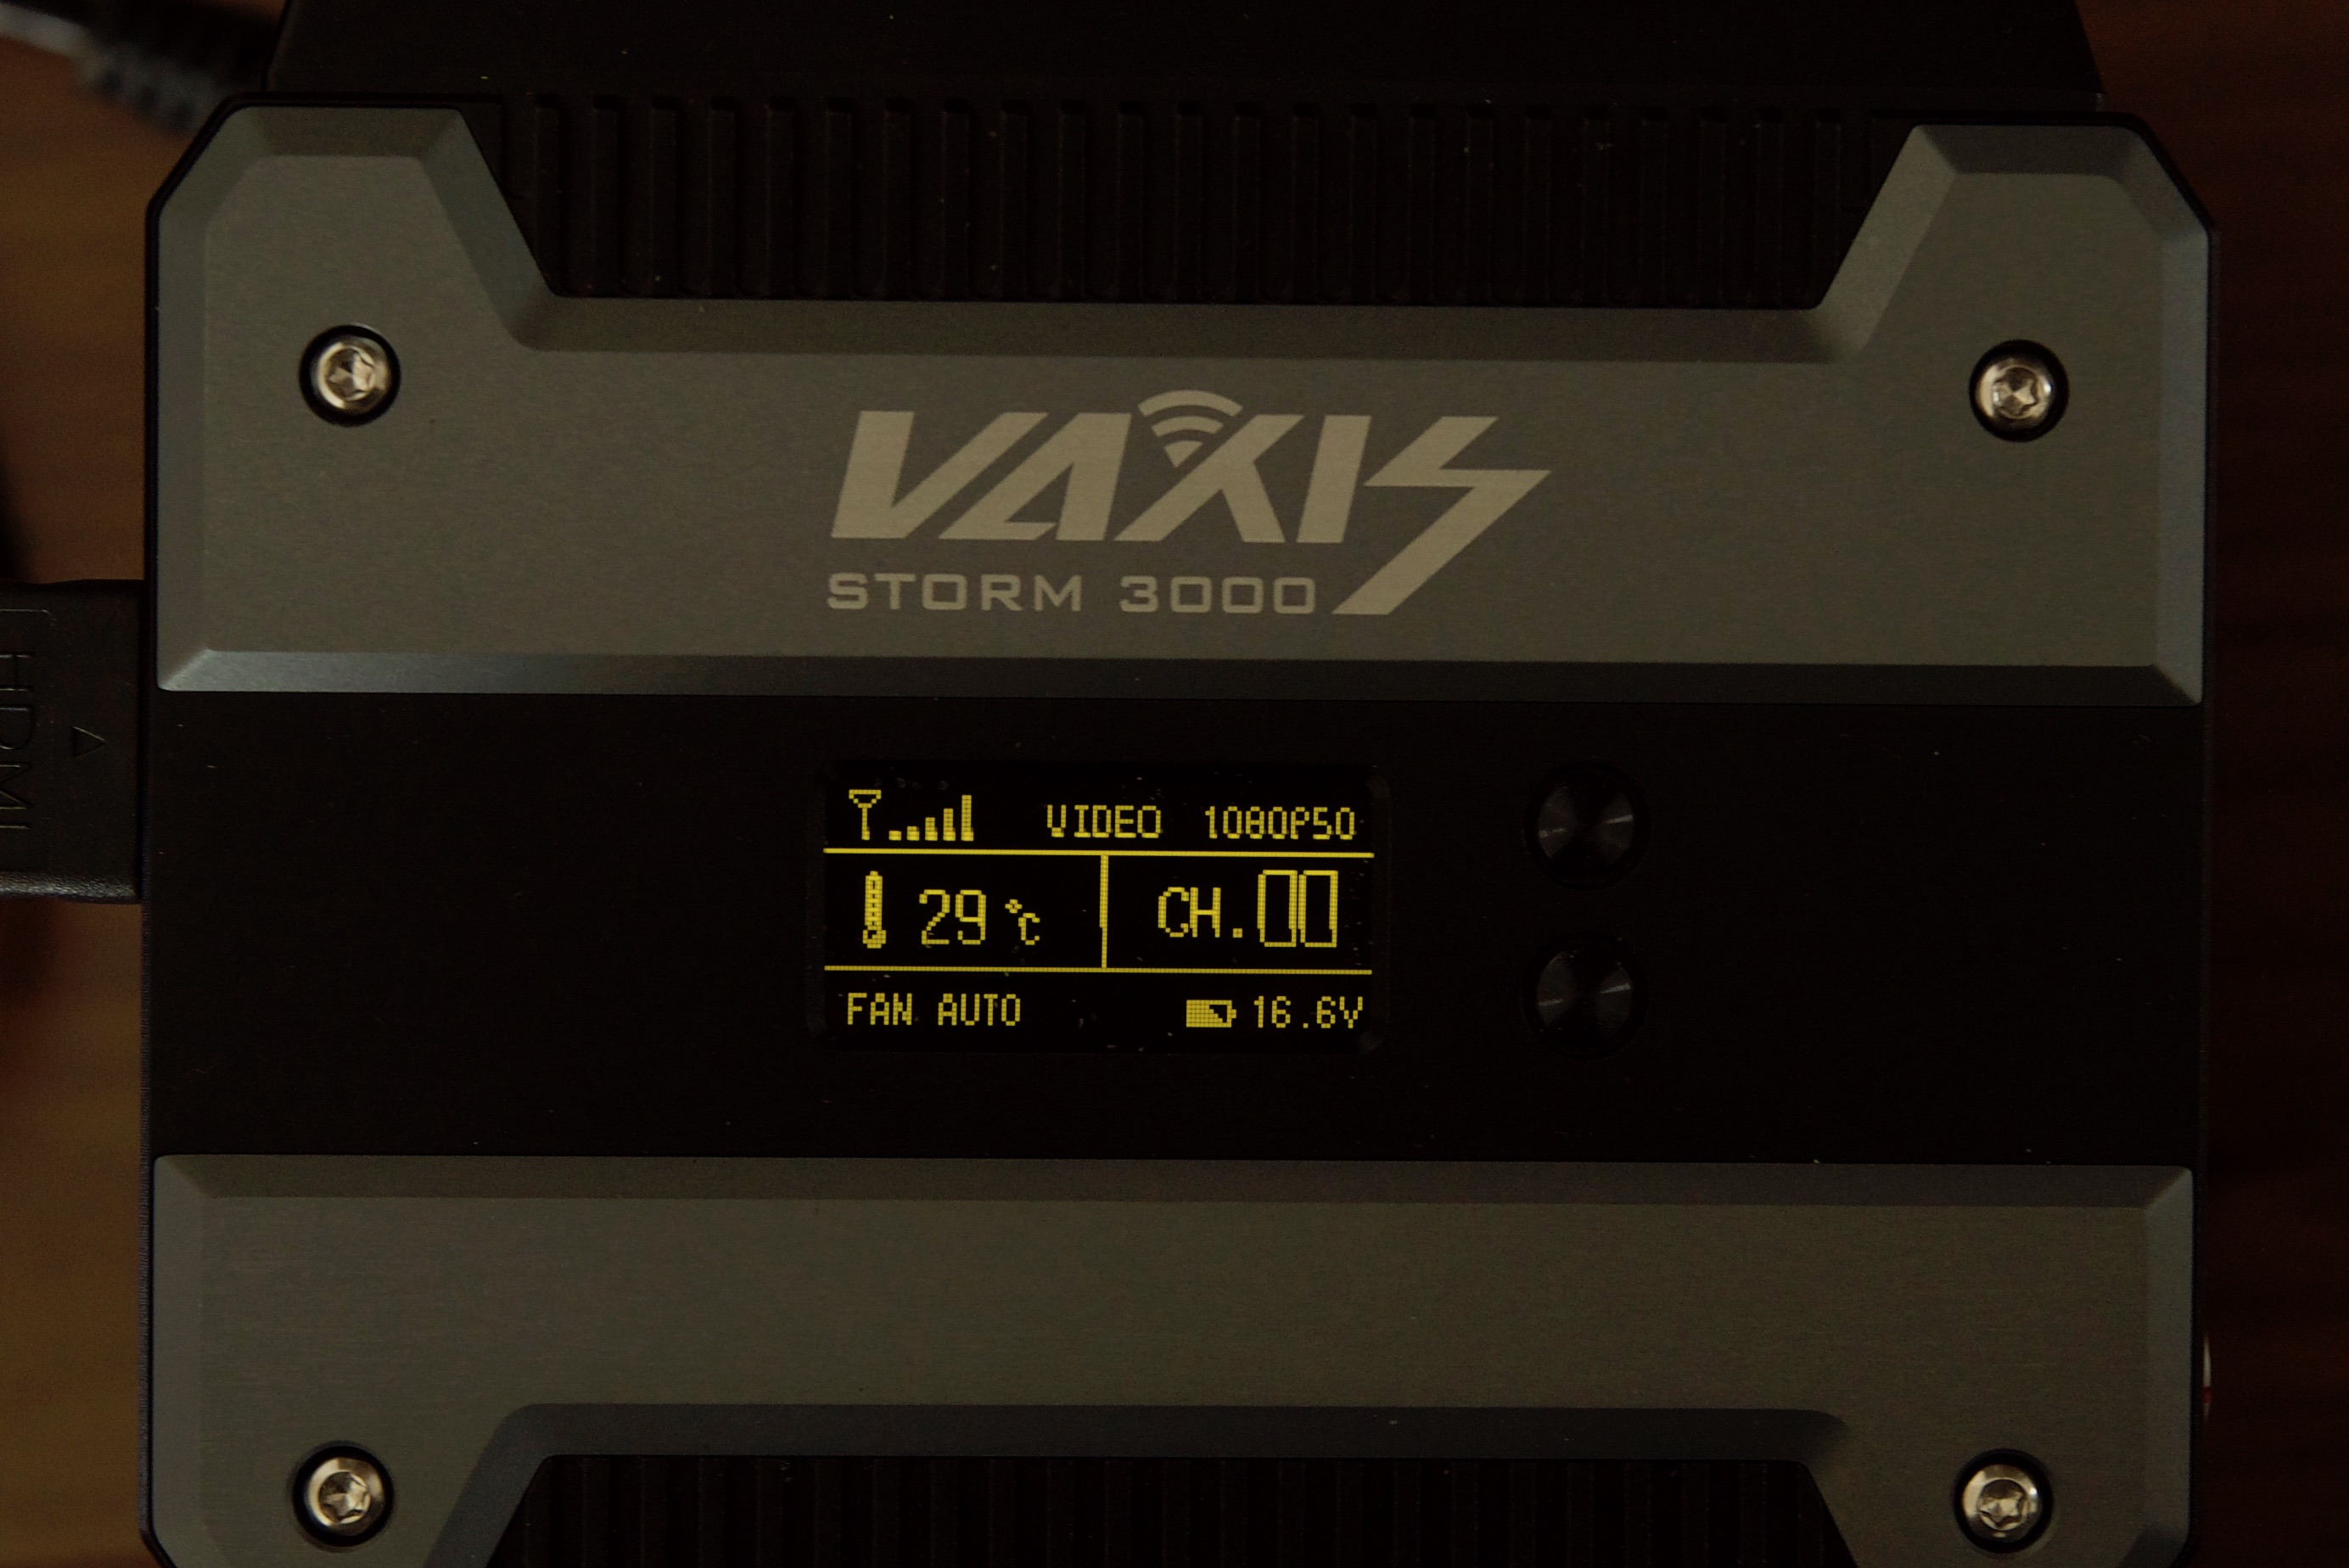 Vaxis Storm 3000 display screen